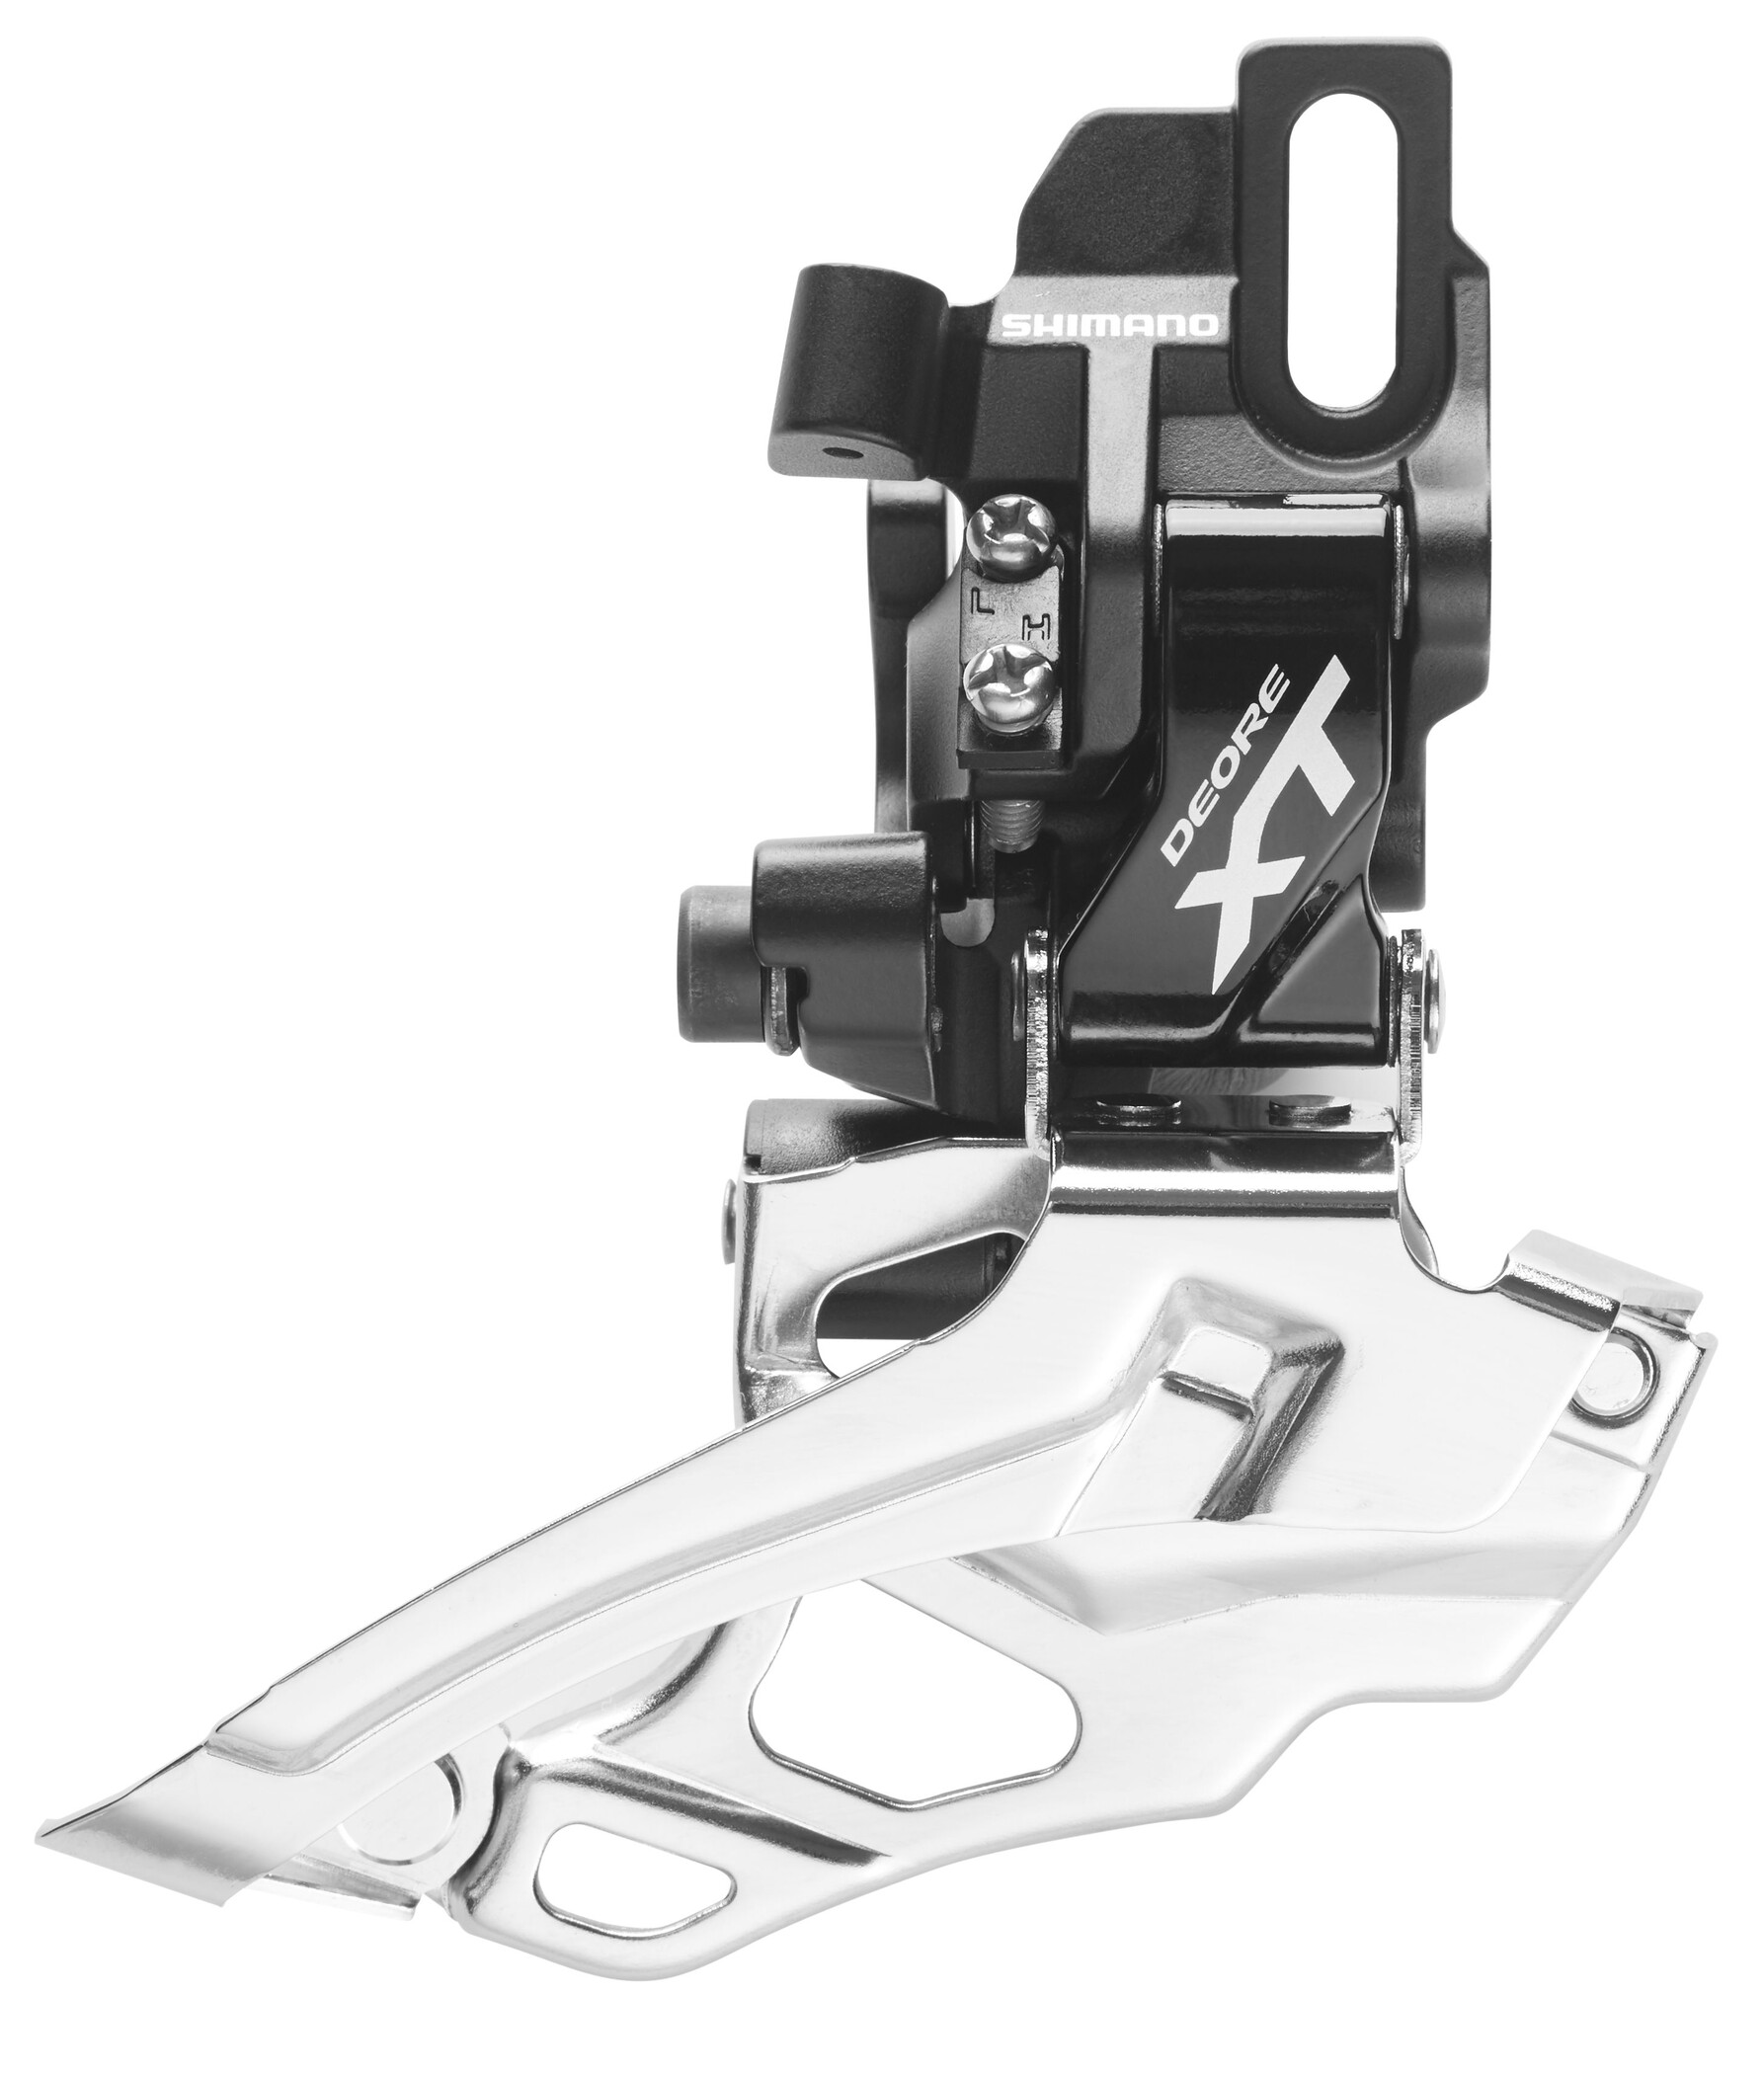 Shimano Deore XT FD-786 Forskifter 2-speed dual pull, black (2019) | Front derailleur